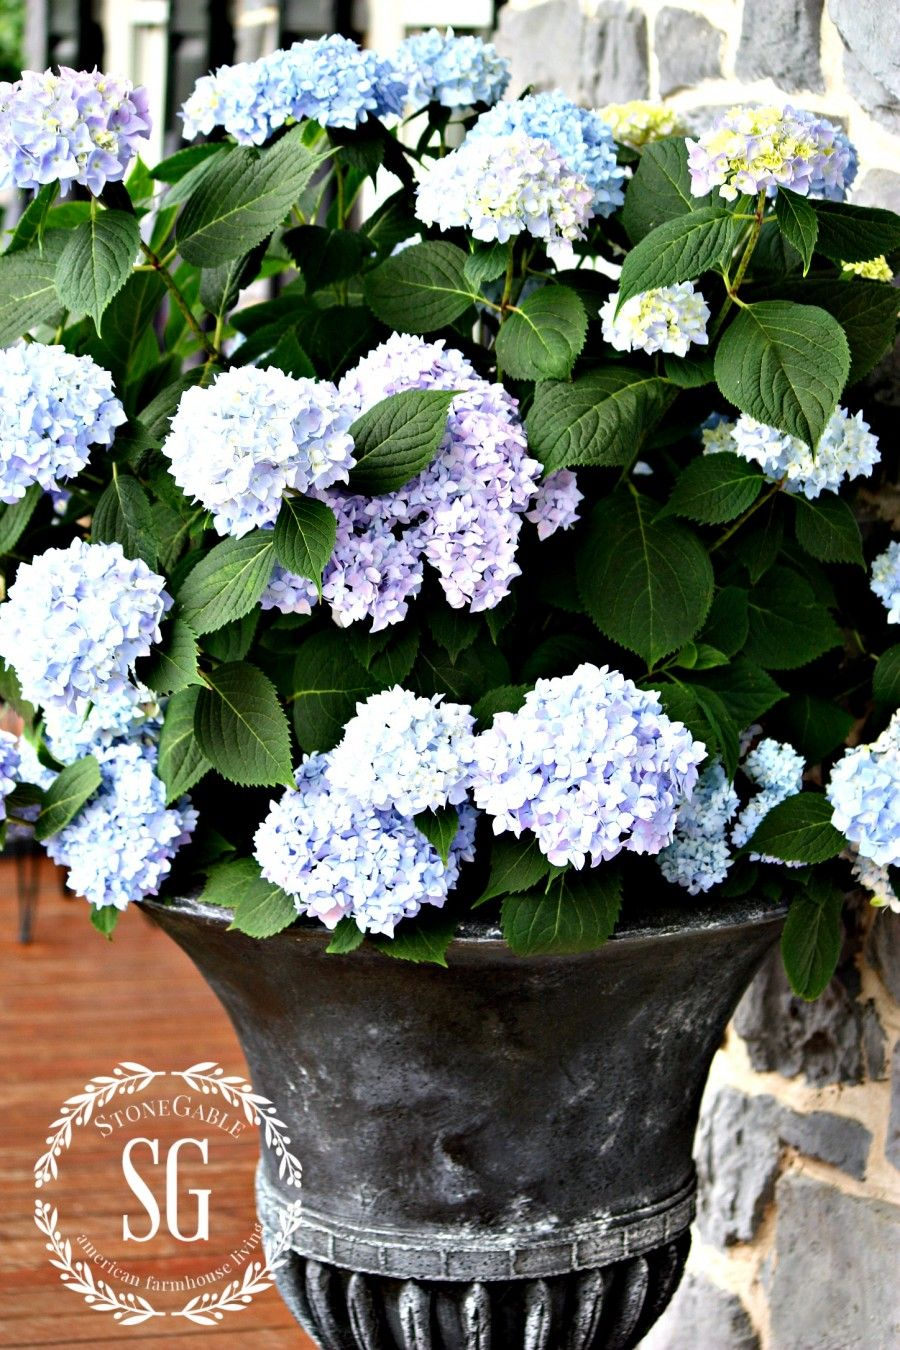 Planting Hydrangeas In Pots And Urns Hydrangea Potted Plants Container Flowers